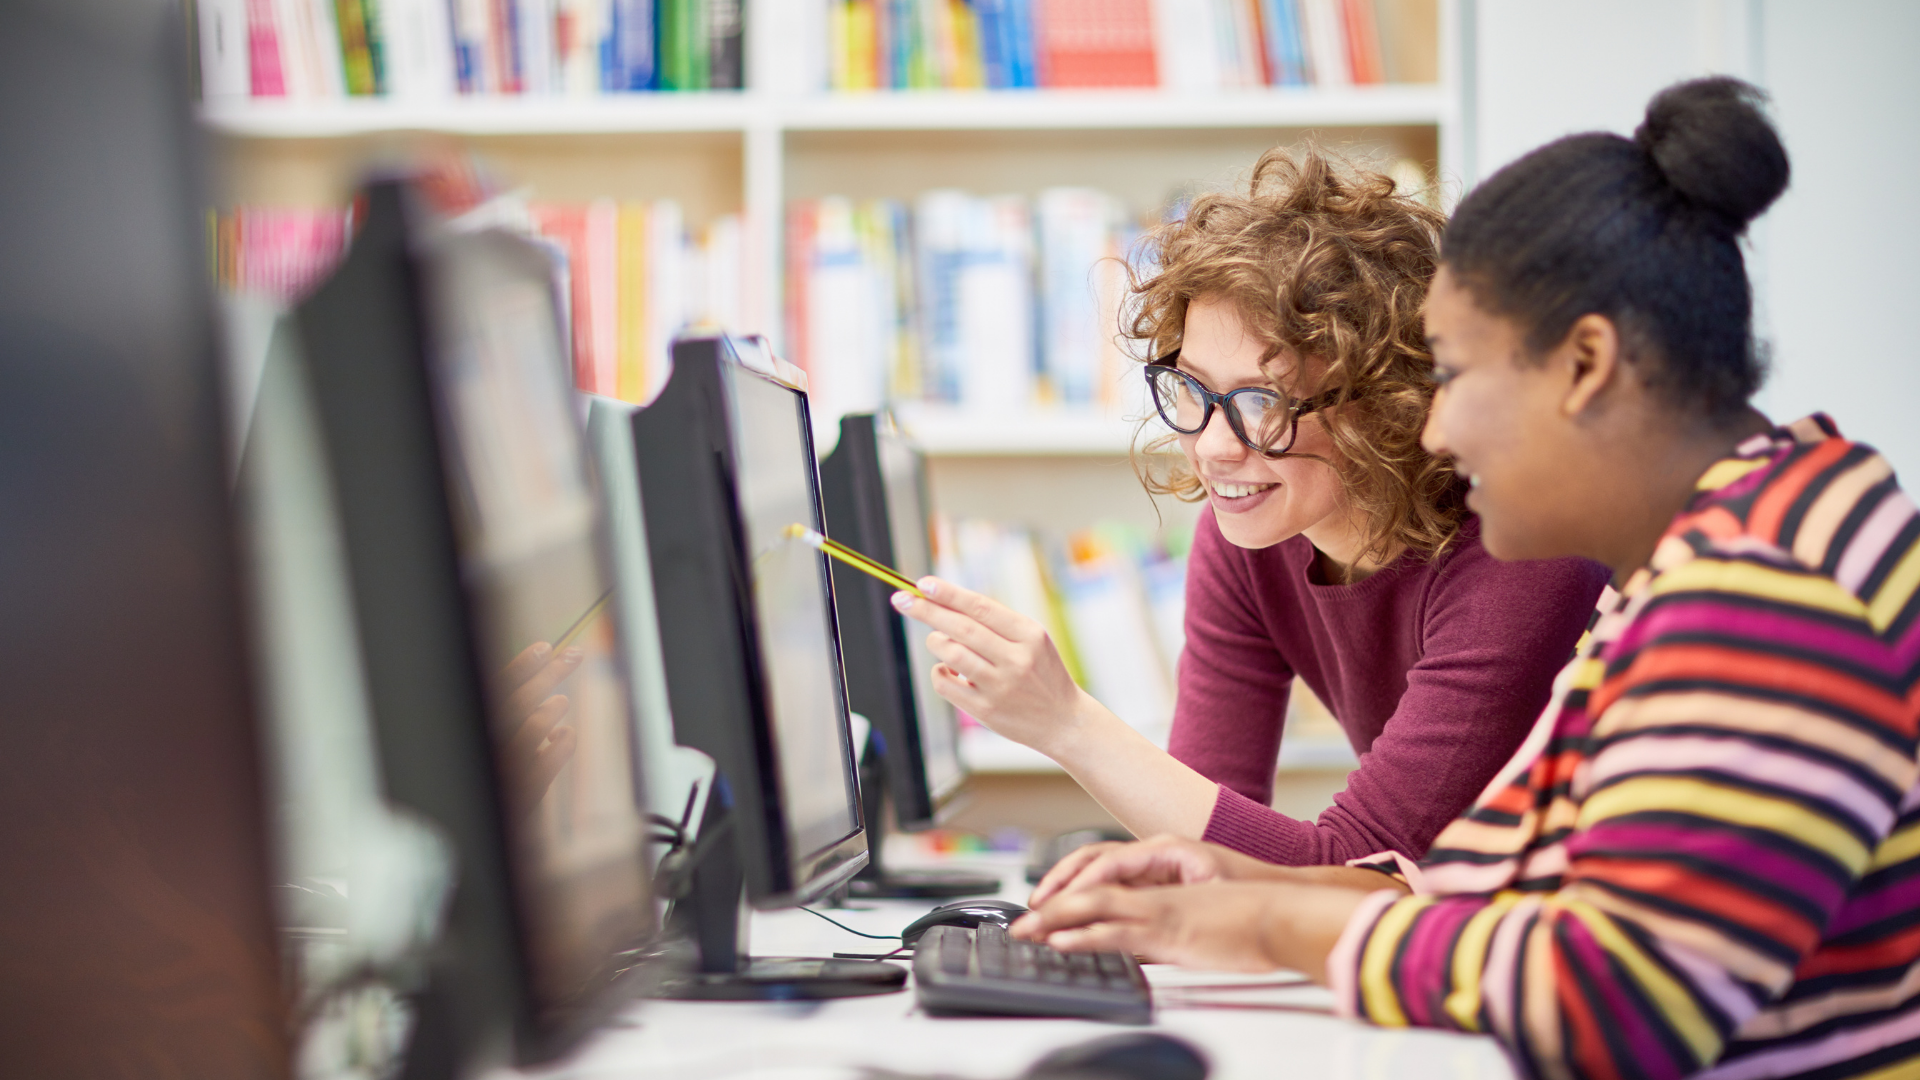 Two women set up a team in SimVenture Validate. They are in a library looking at a computer.